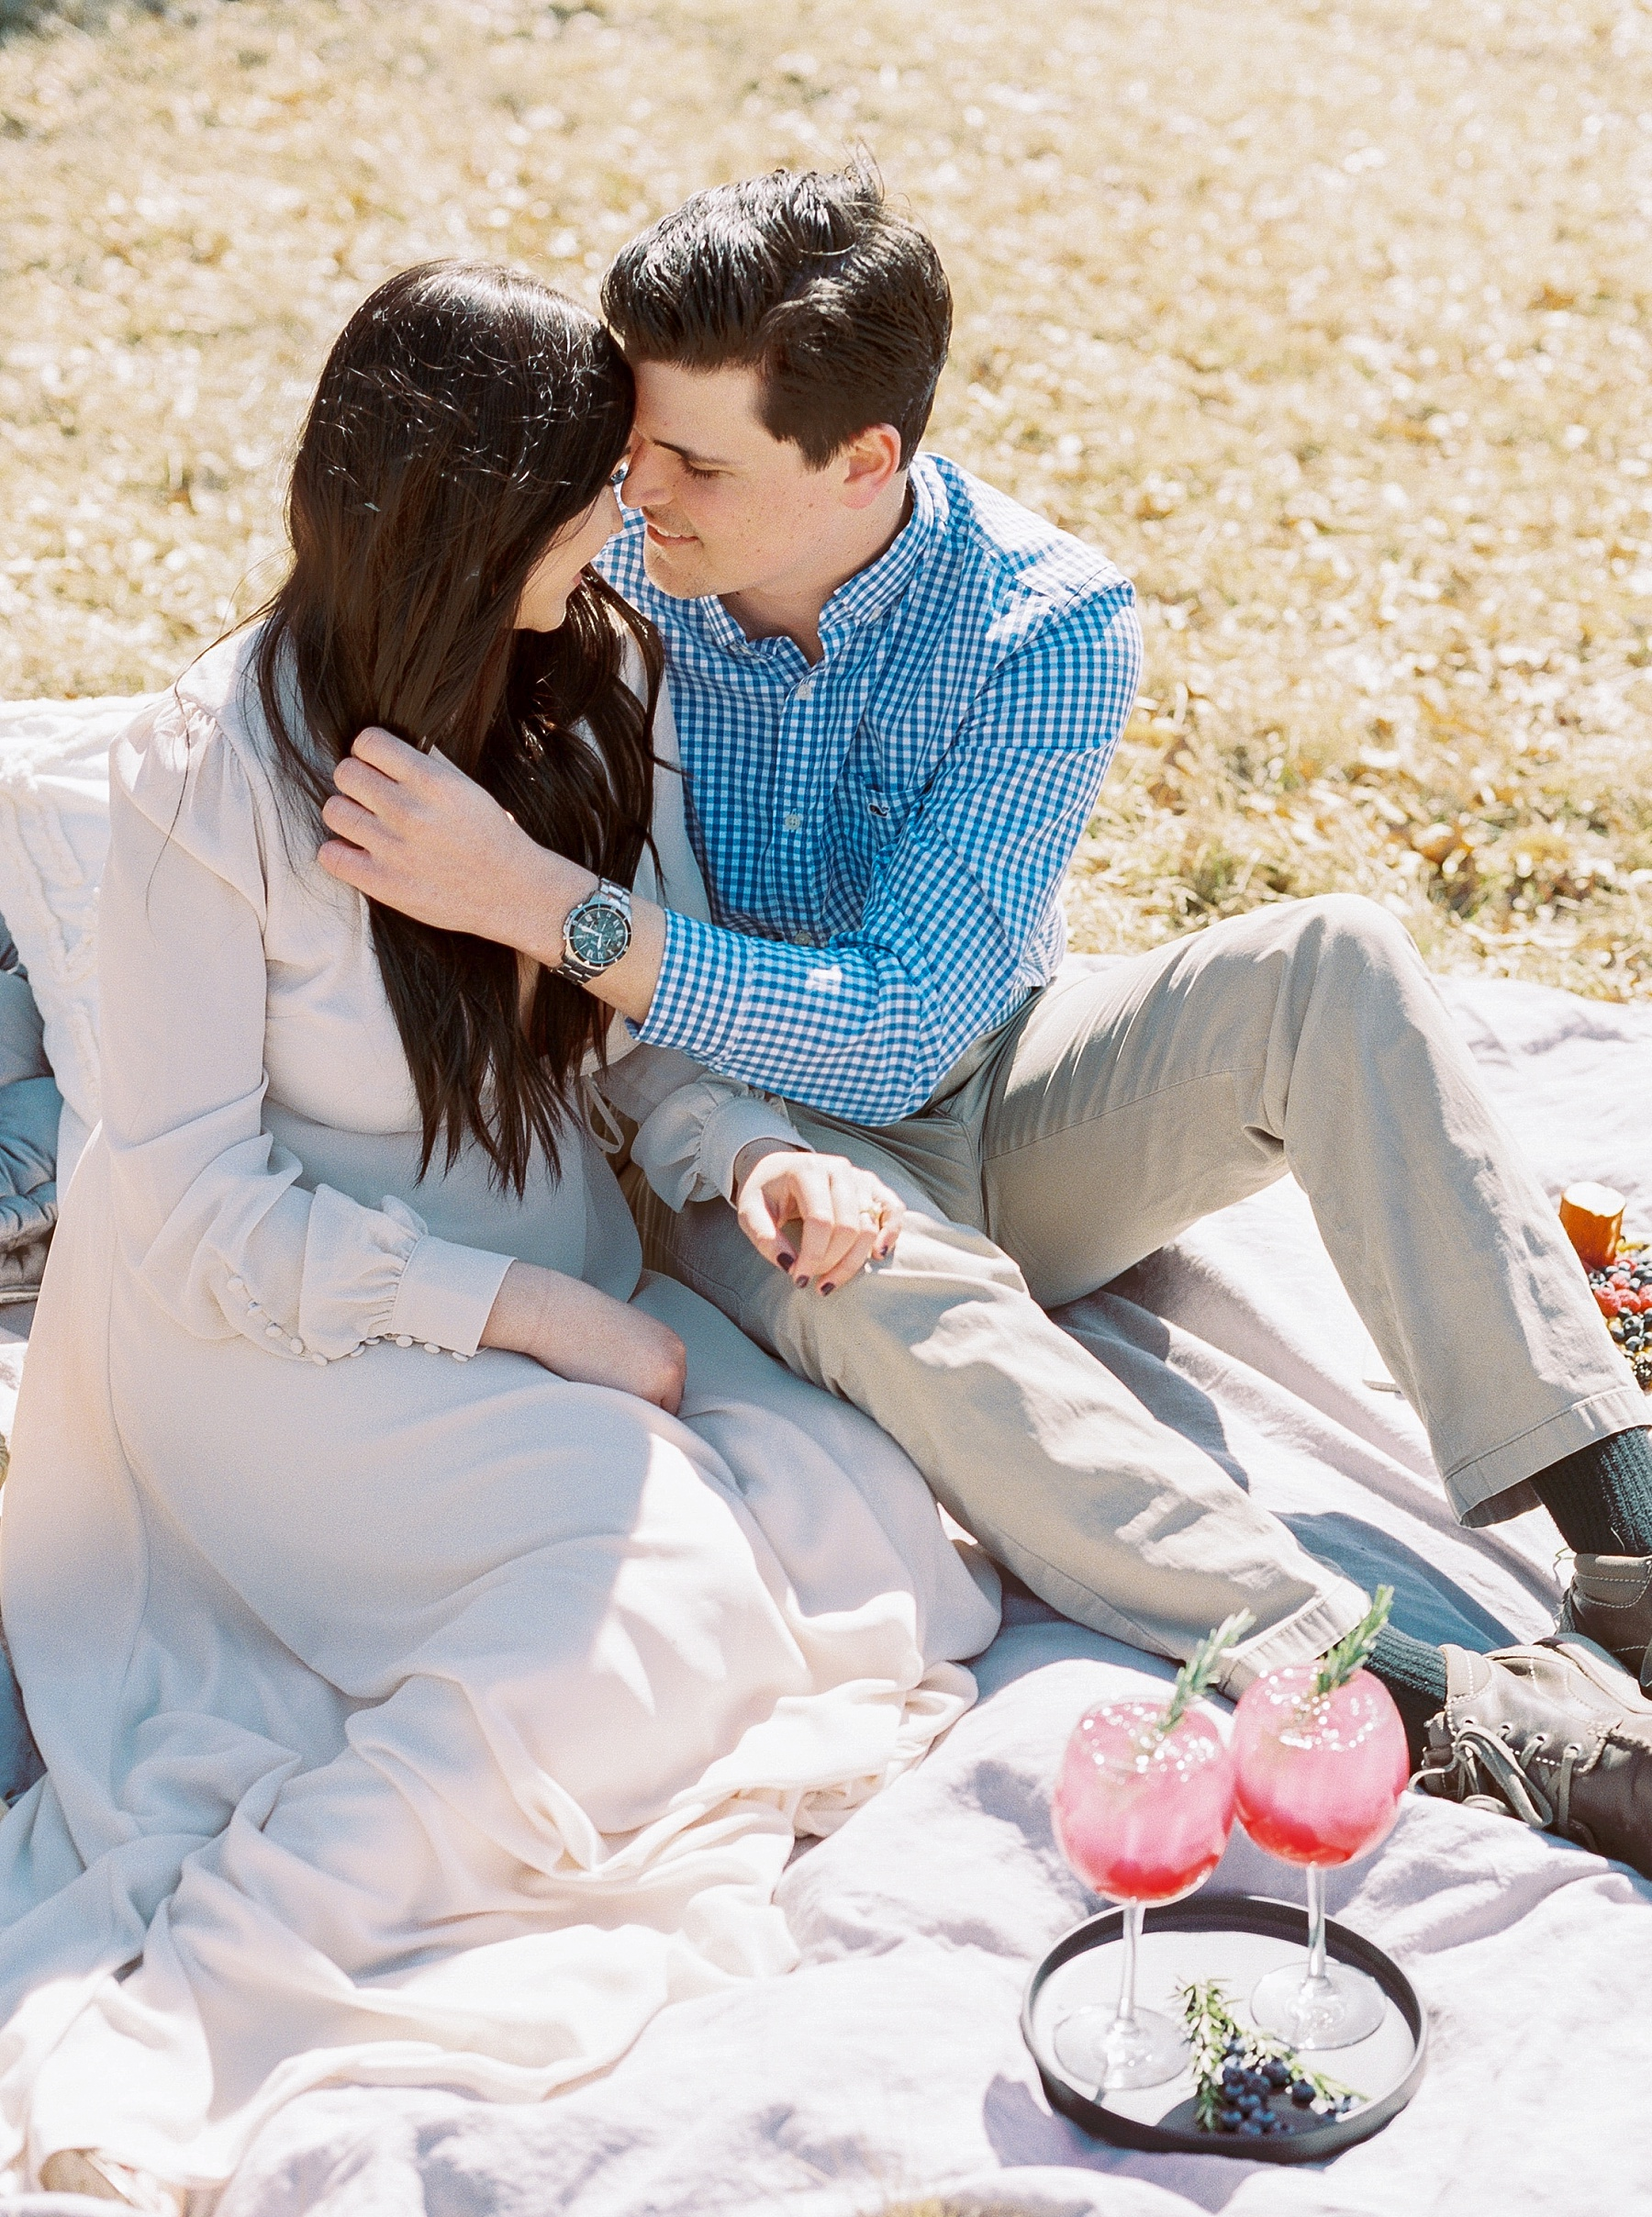 Late Fall Farm-to-table Inspired Brunch Picnic Engagement Session During Wedding Weekend by Kelsi Kliethermes Photography Best Missouri and Maui Wedding Photographer_0024.jpg